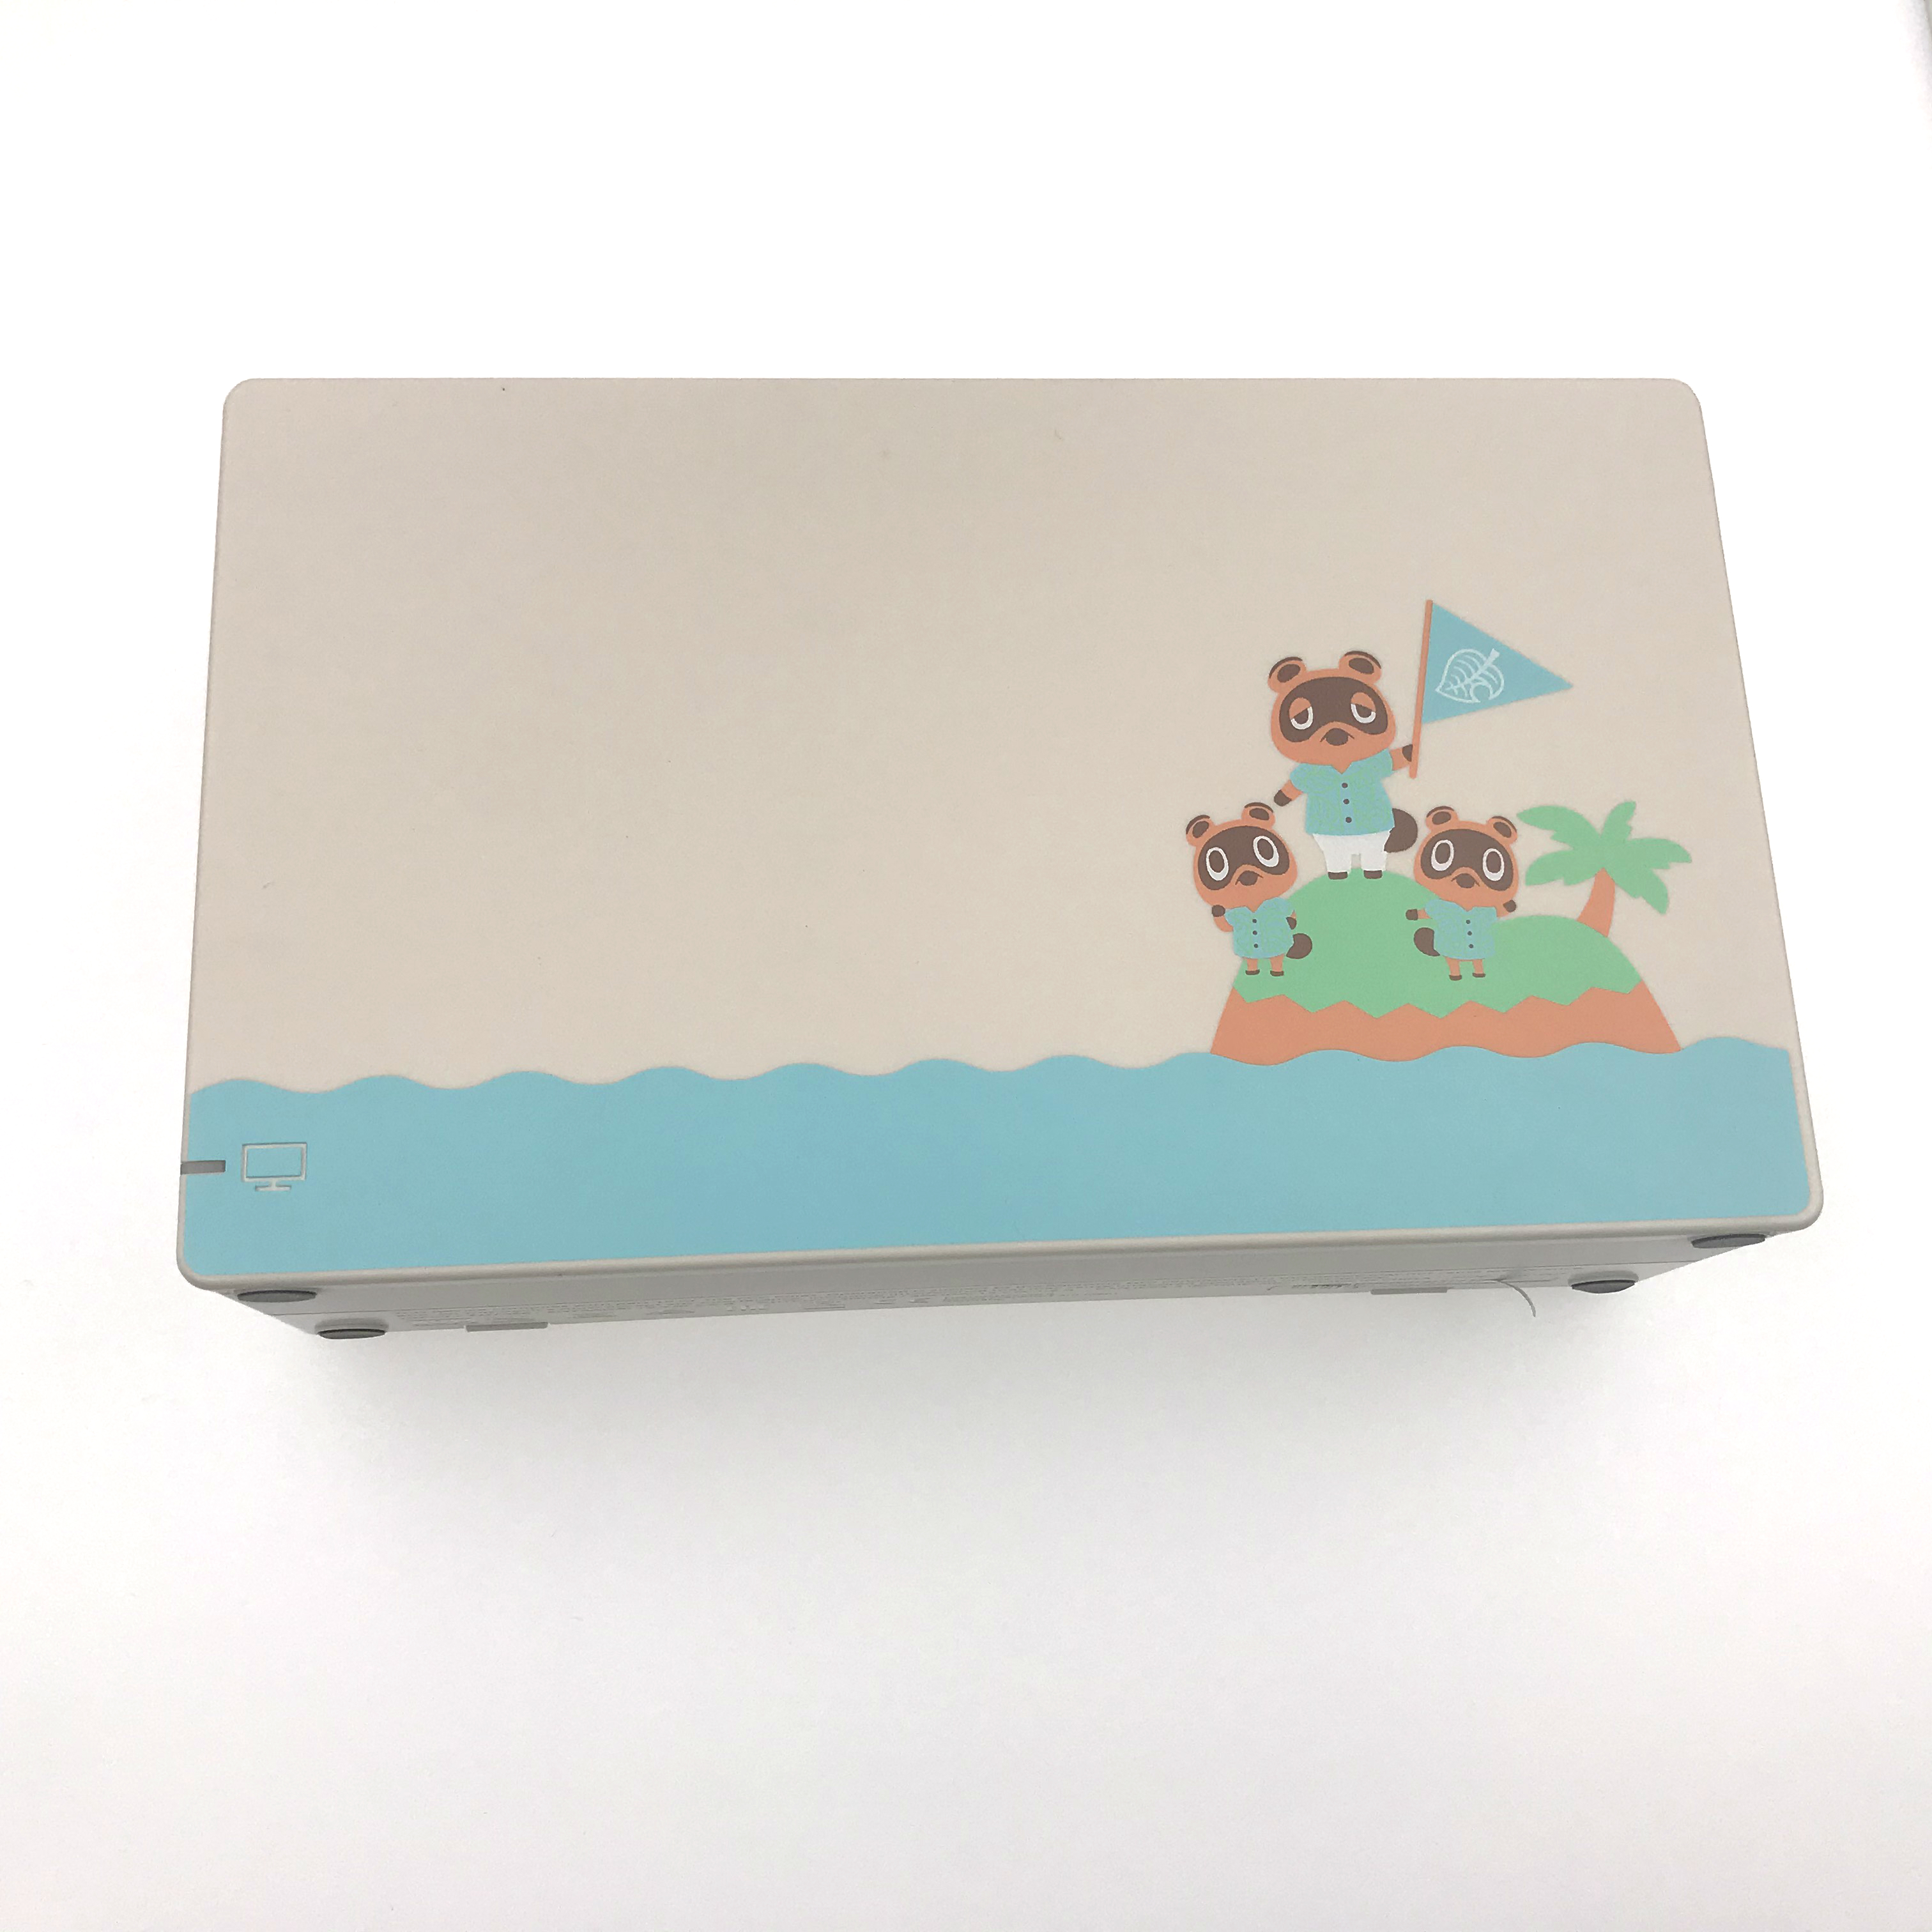 5pcs Lot Limited Version Animal Crossing Edition Charging Dock For